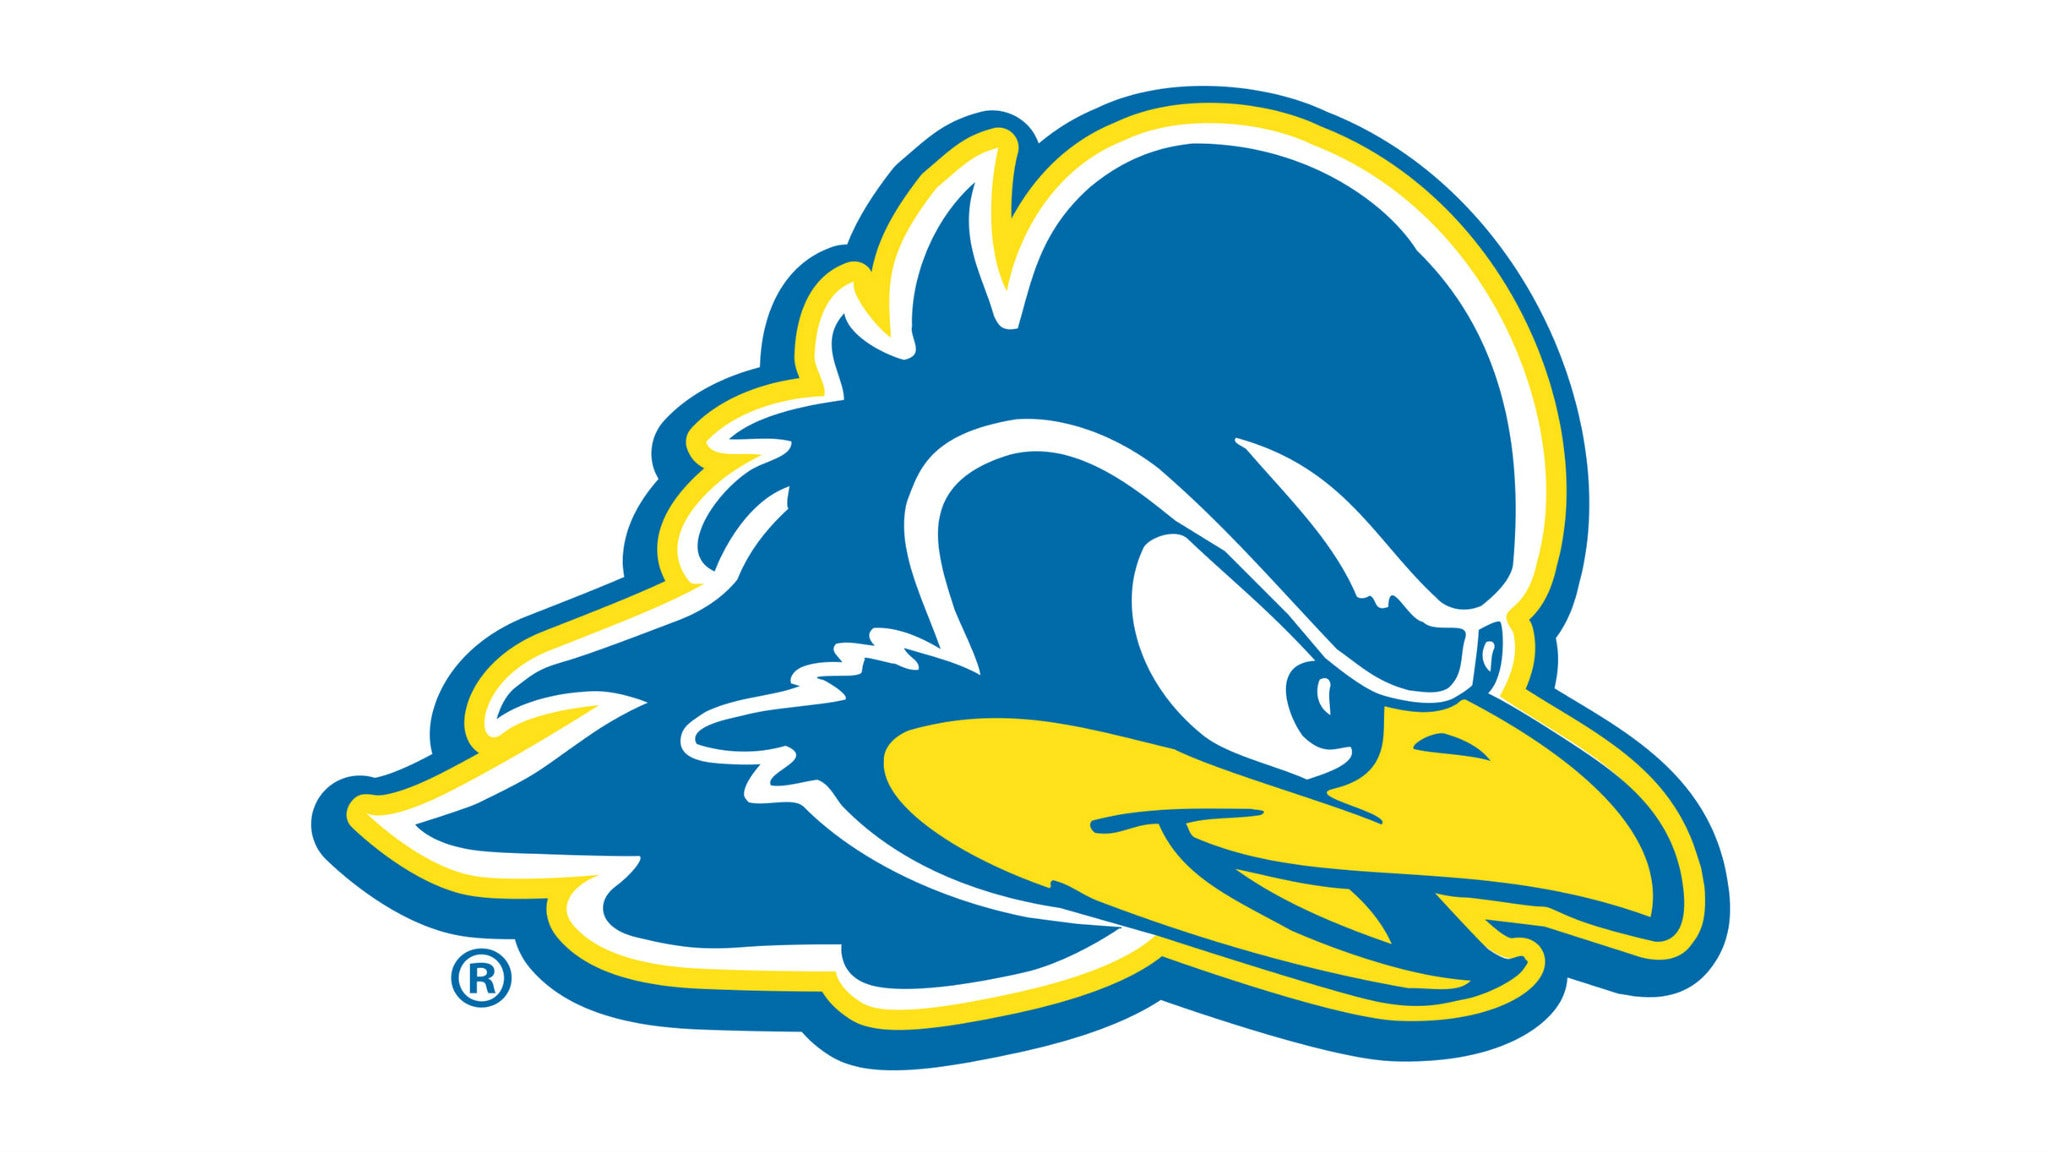 University of Delaware Blue Hens Football vs. Stony Brook University Seawolves Football